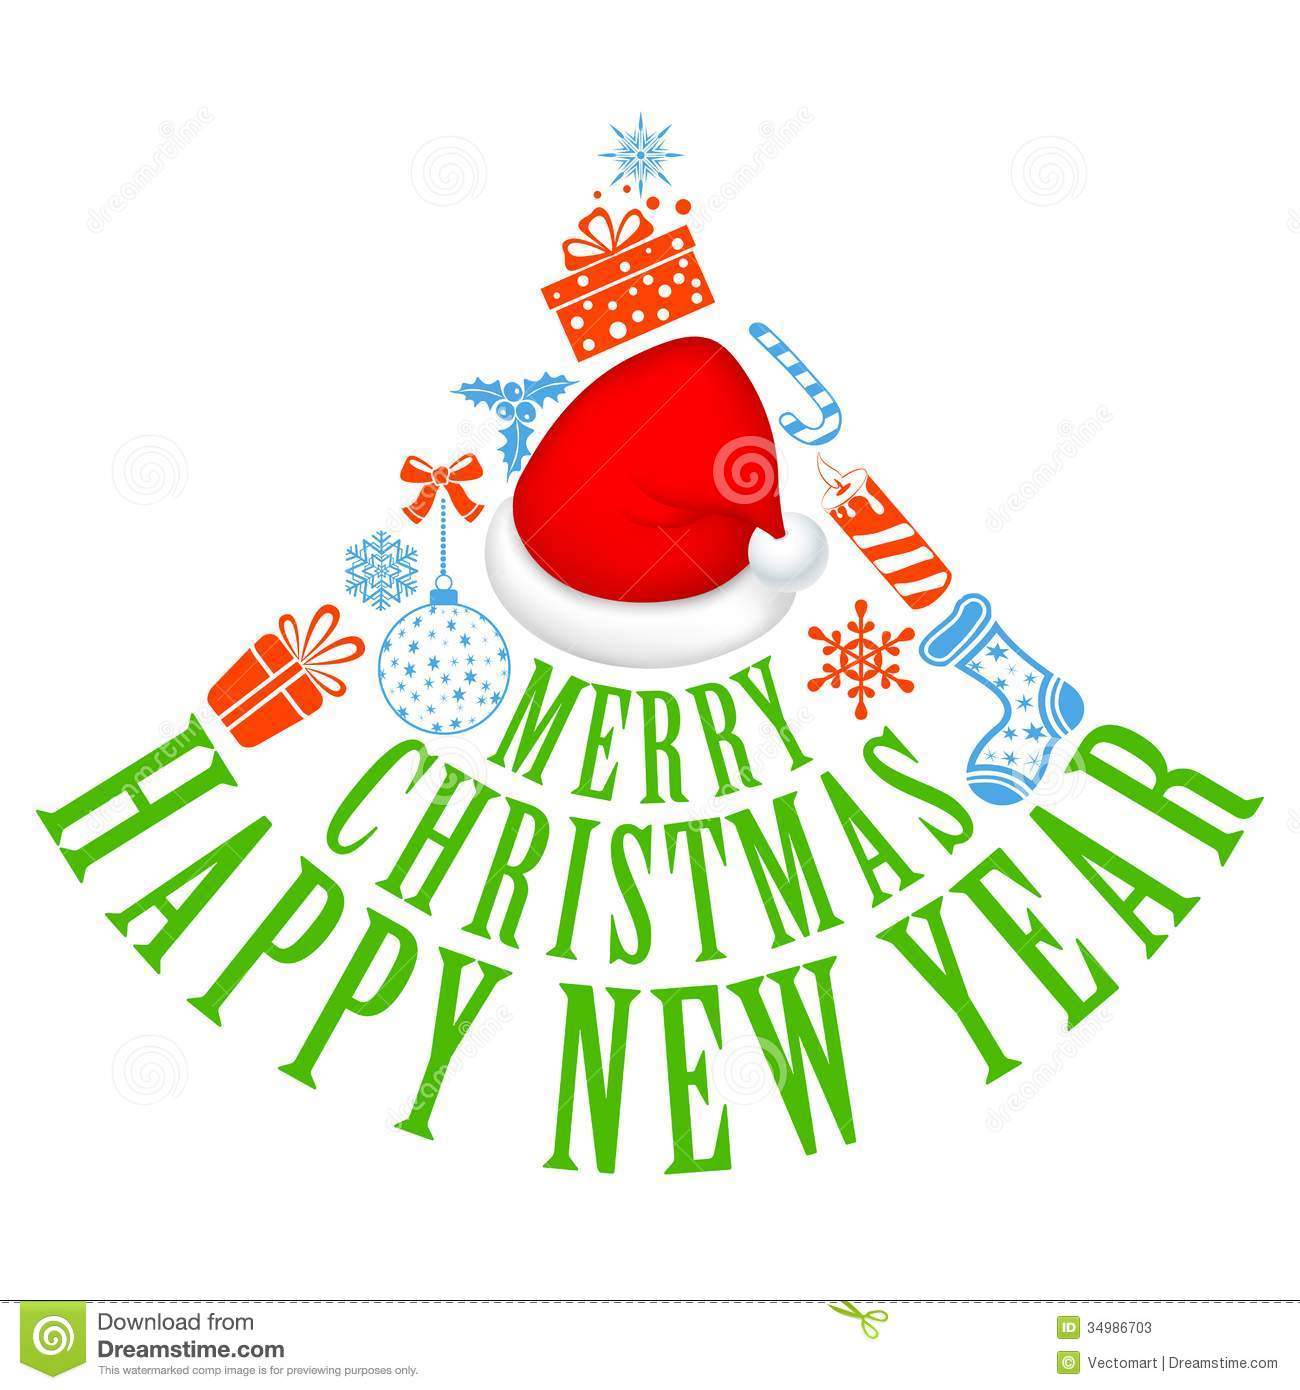 Merry Christmas Happy New Year Clip Art.